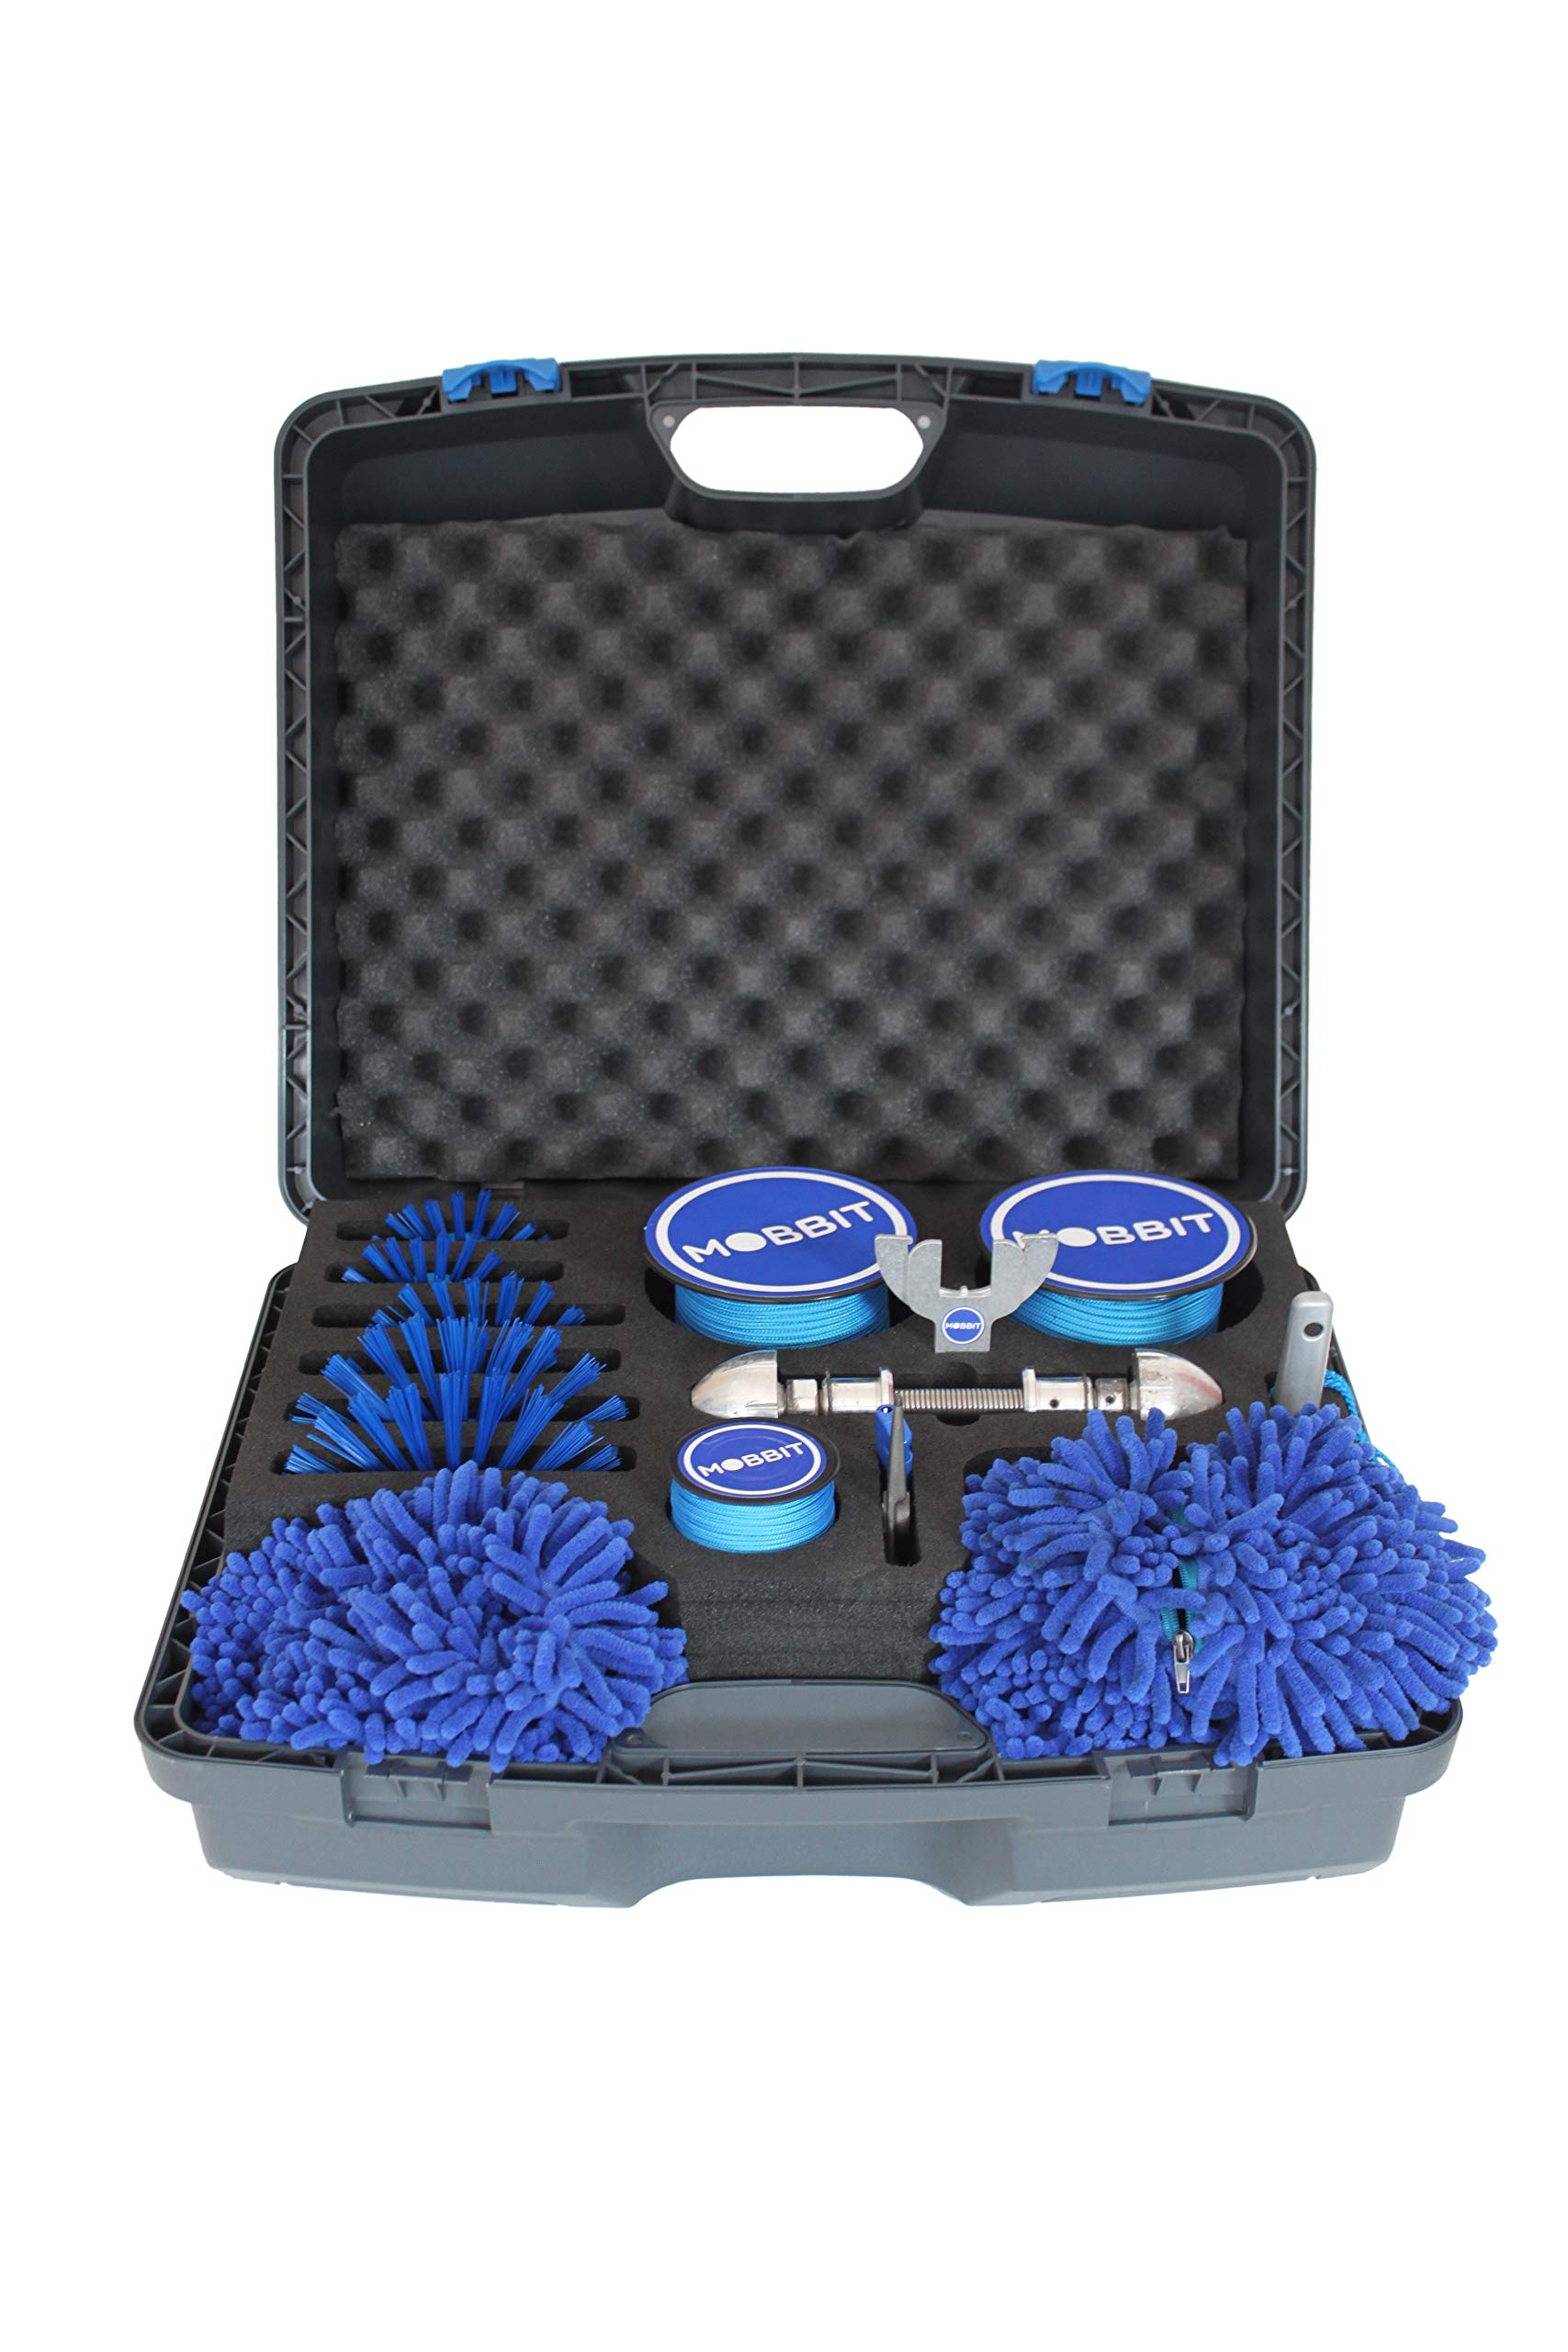 Mobbit Type 200 Cleaning Set by Mobbit (Image #1)